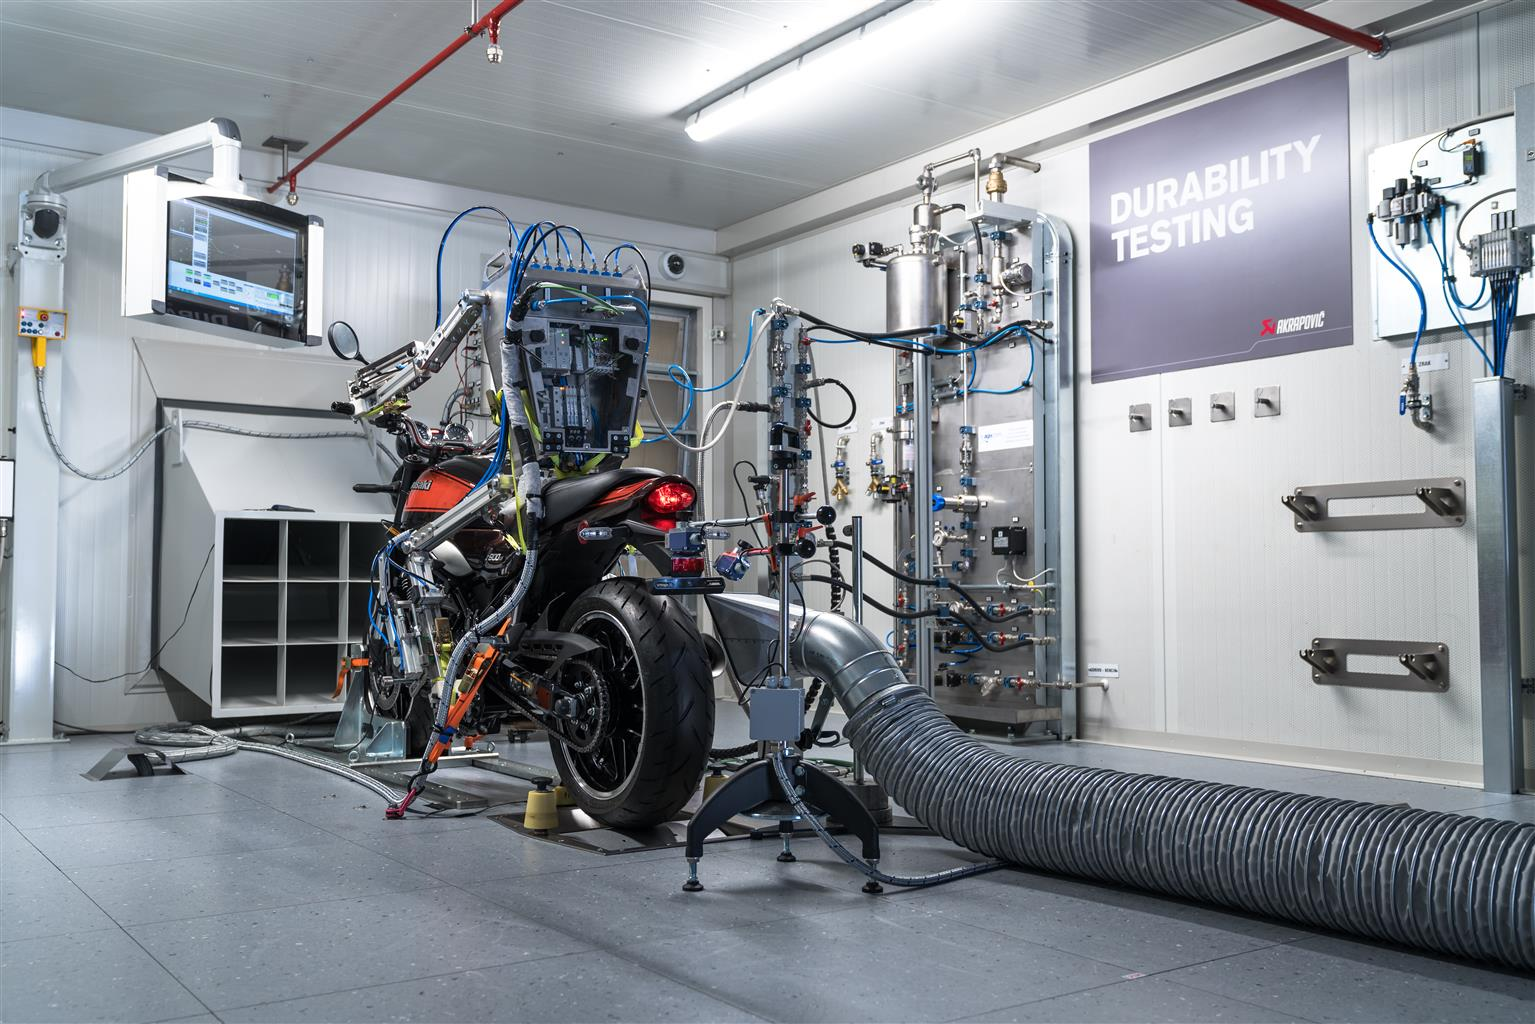 Akrapovic gets a robot to run durability tests on e